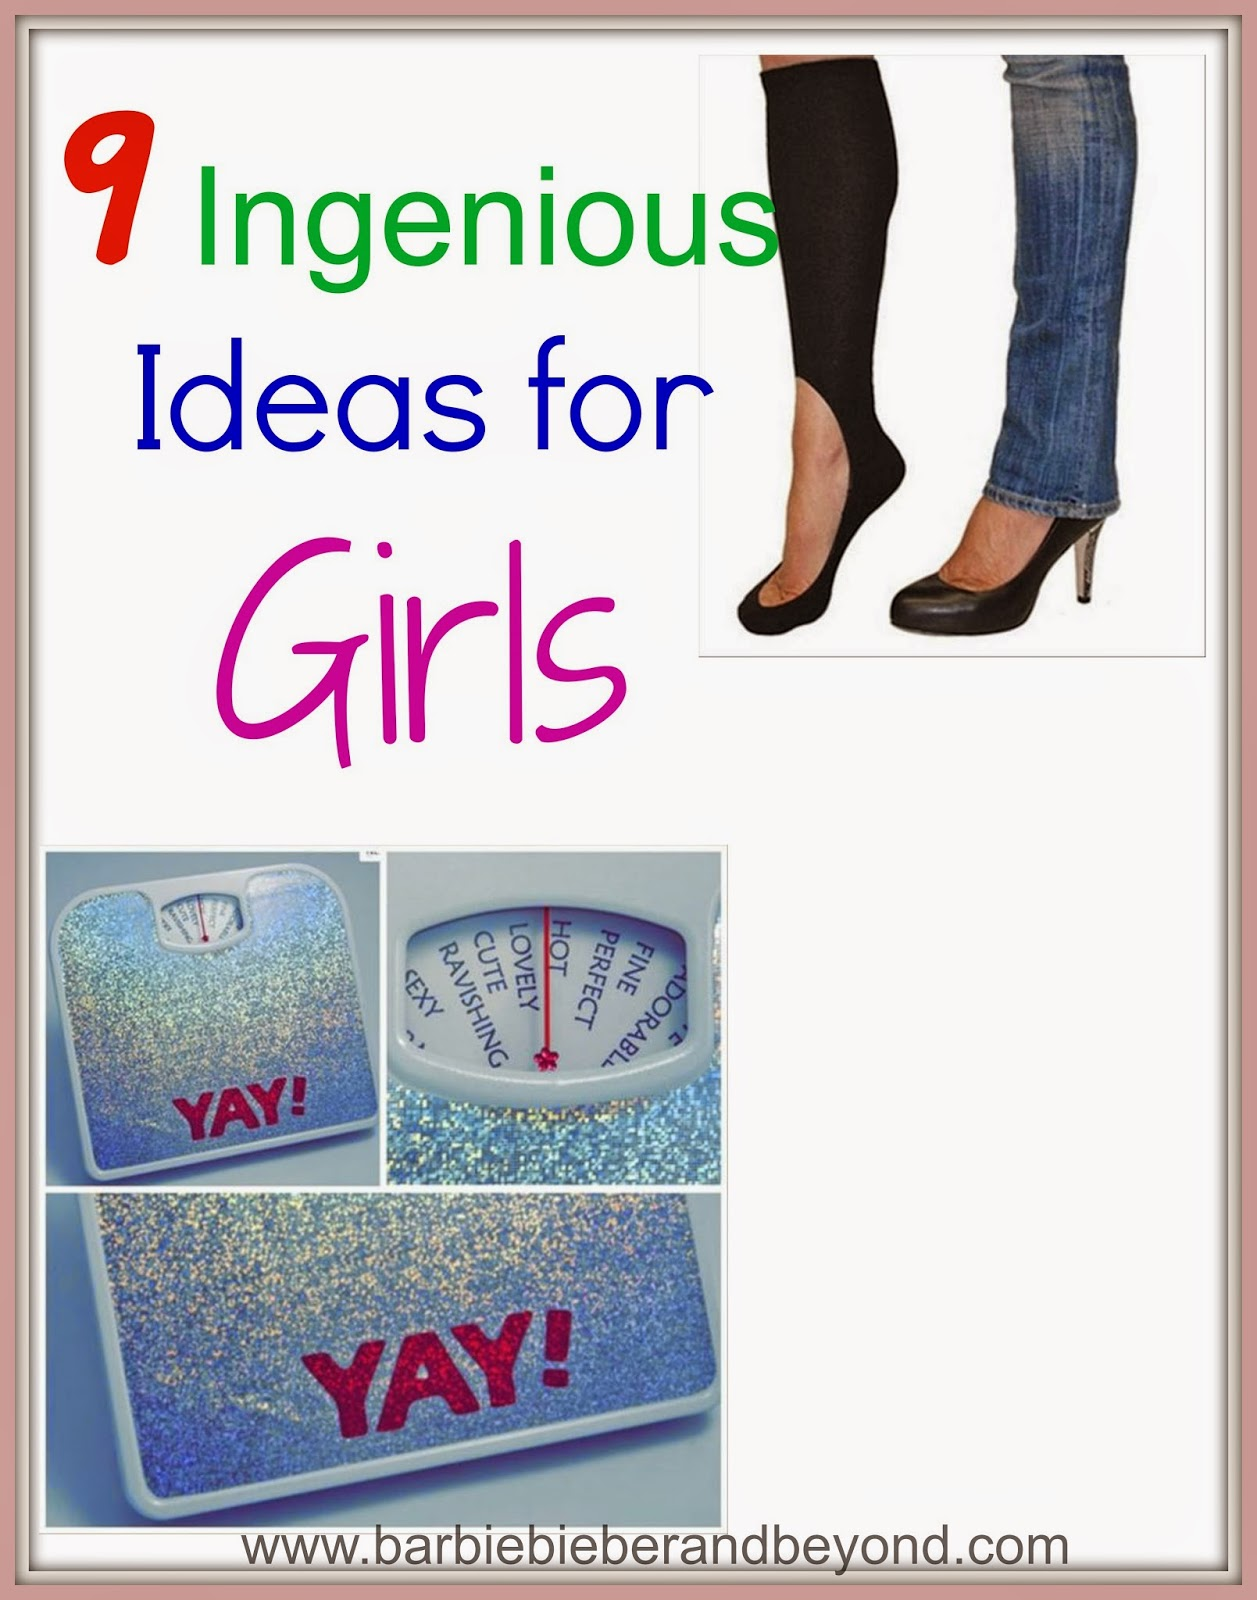 9 Ingenious Ideas and Products - For Girls